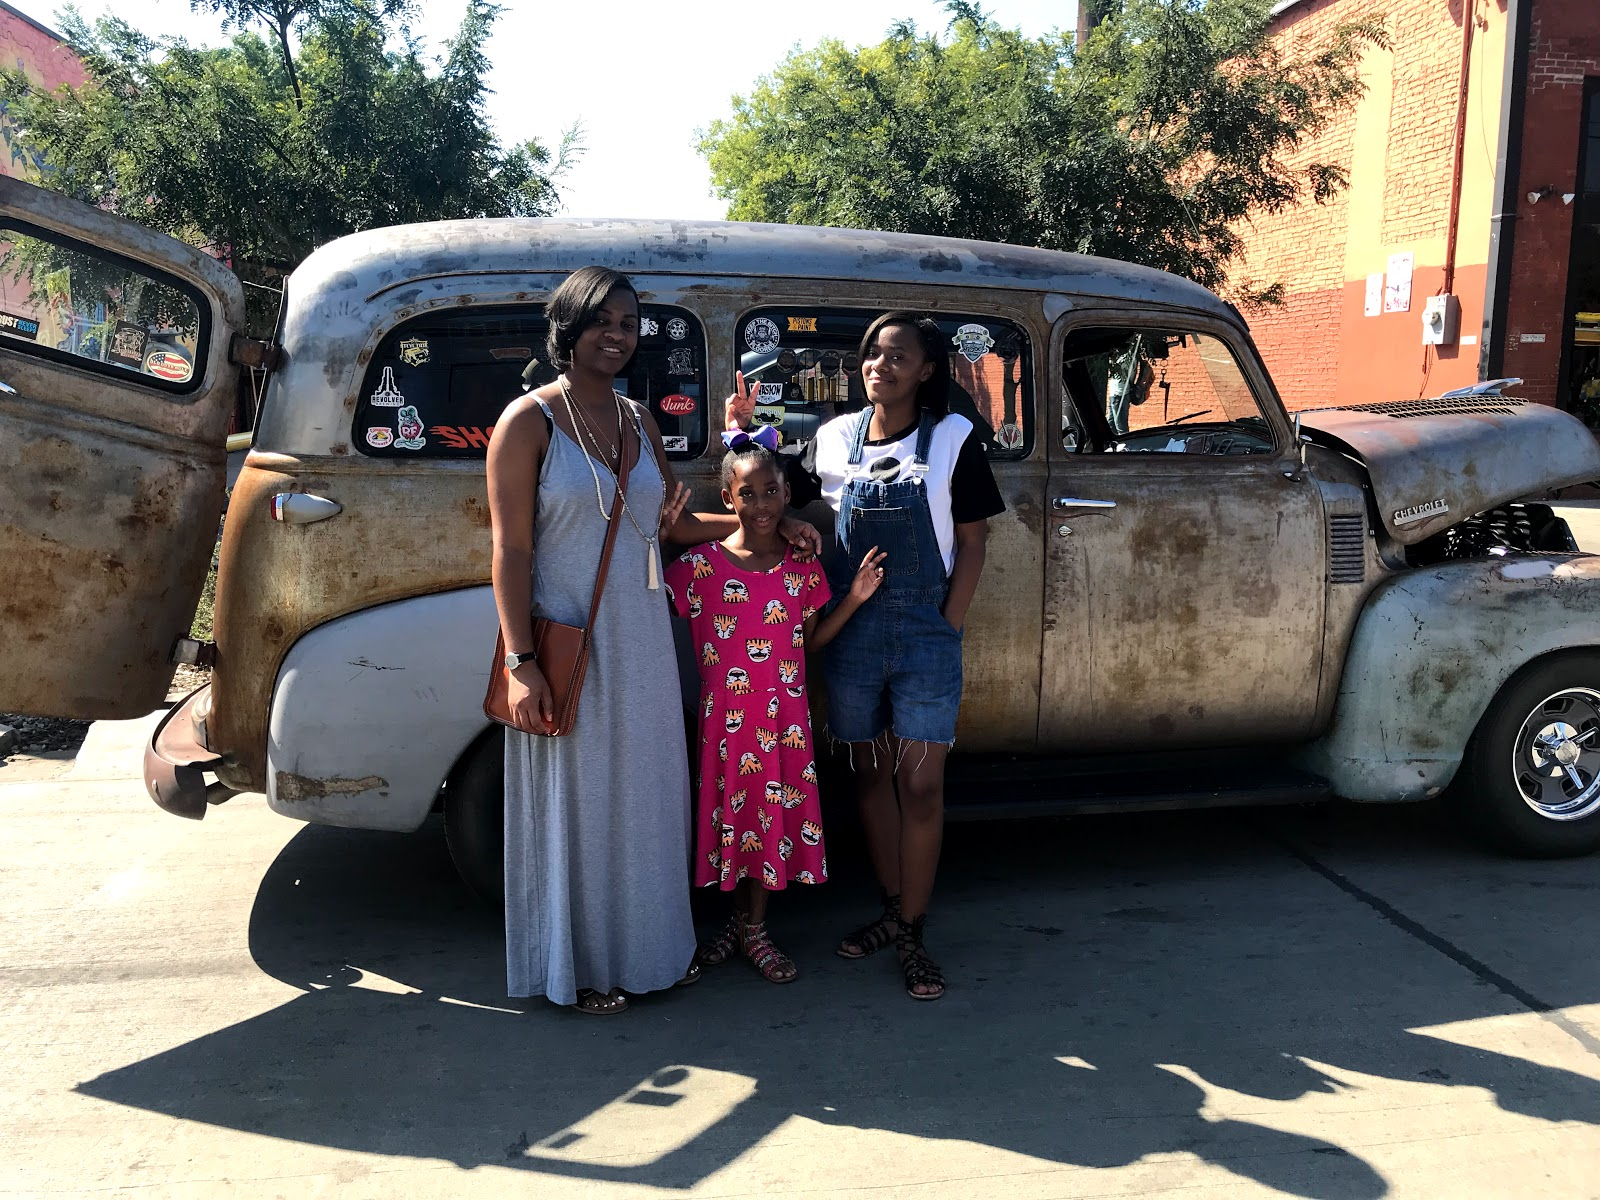 Image: Family posing in front of vintage truck at the Dallas Car Show in Deep Ellum